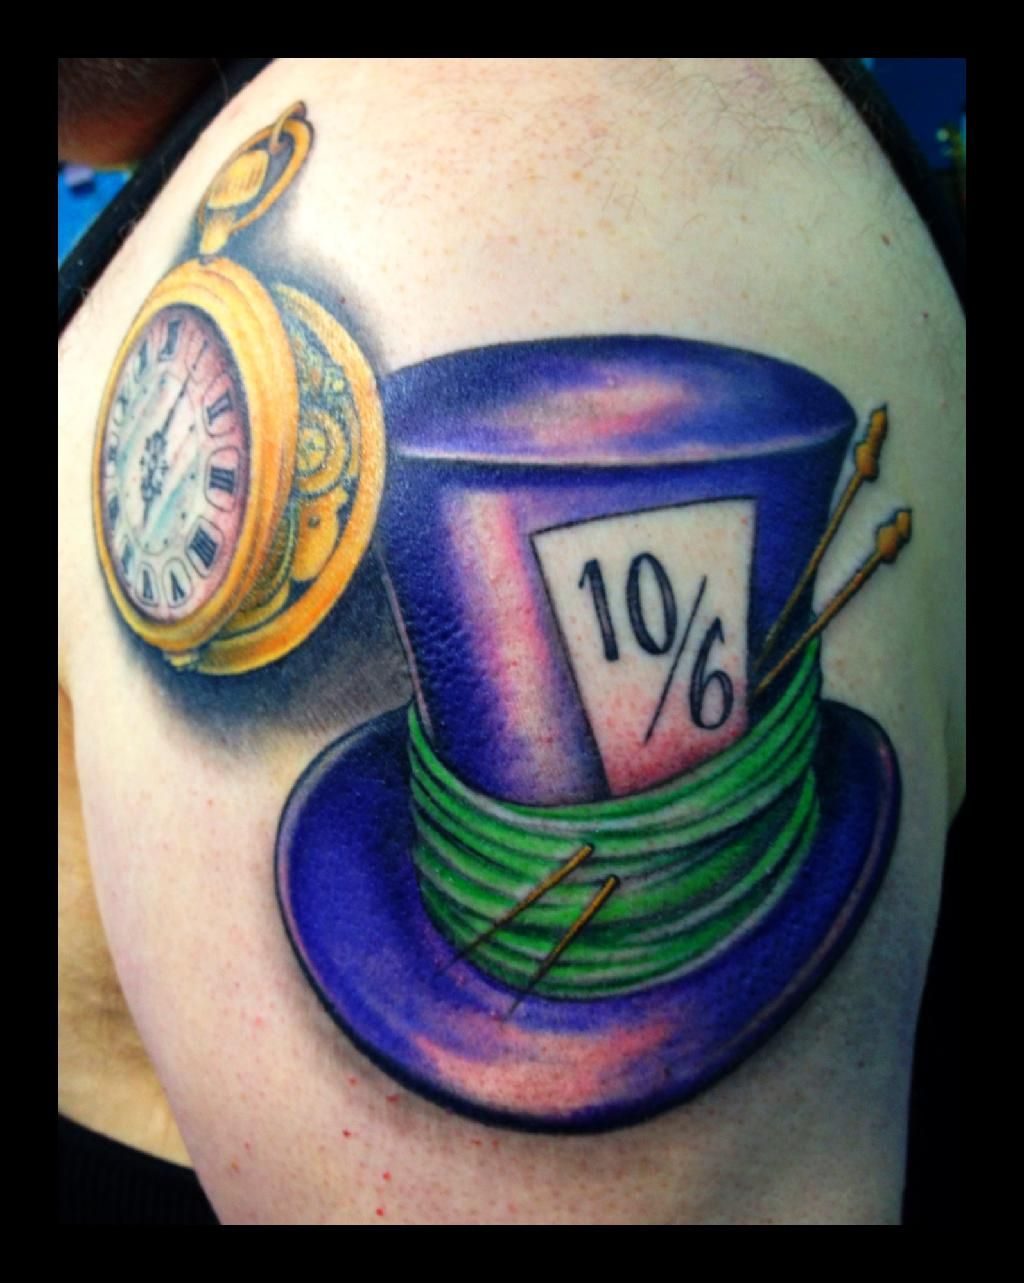 ad428f07a Mad hatter hat tattoo   Tattoos, unique pictures & things   Mad ...